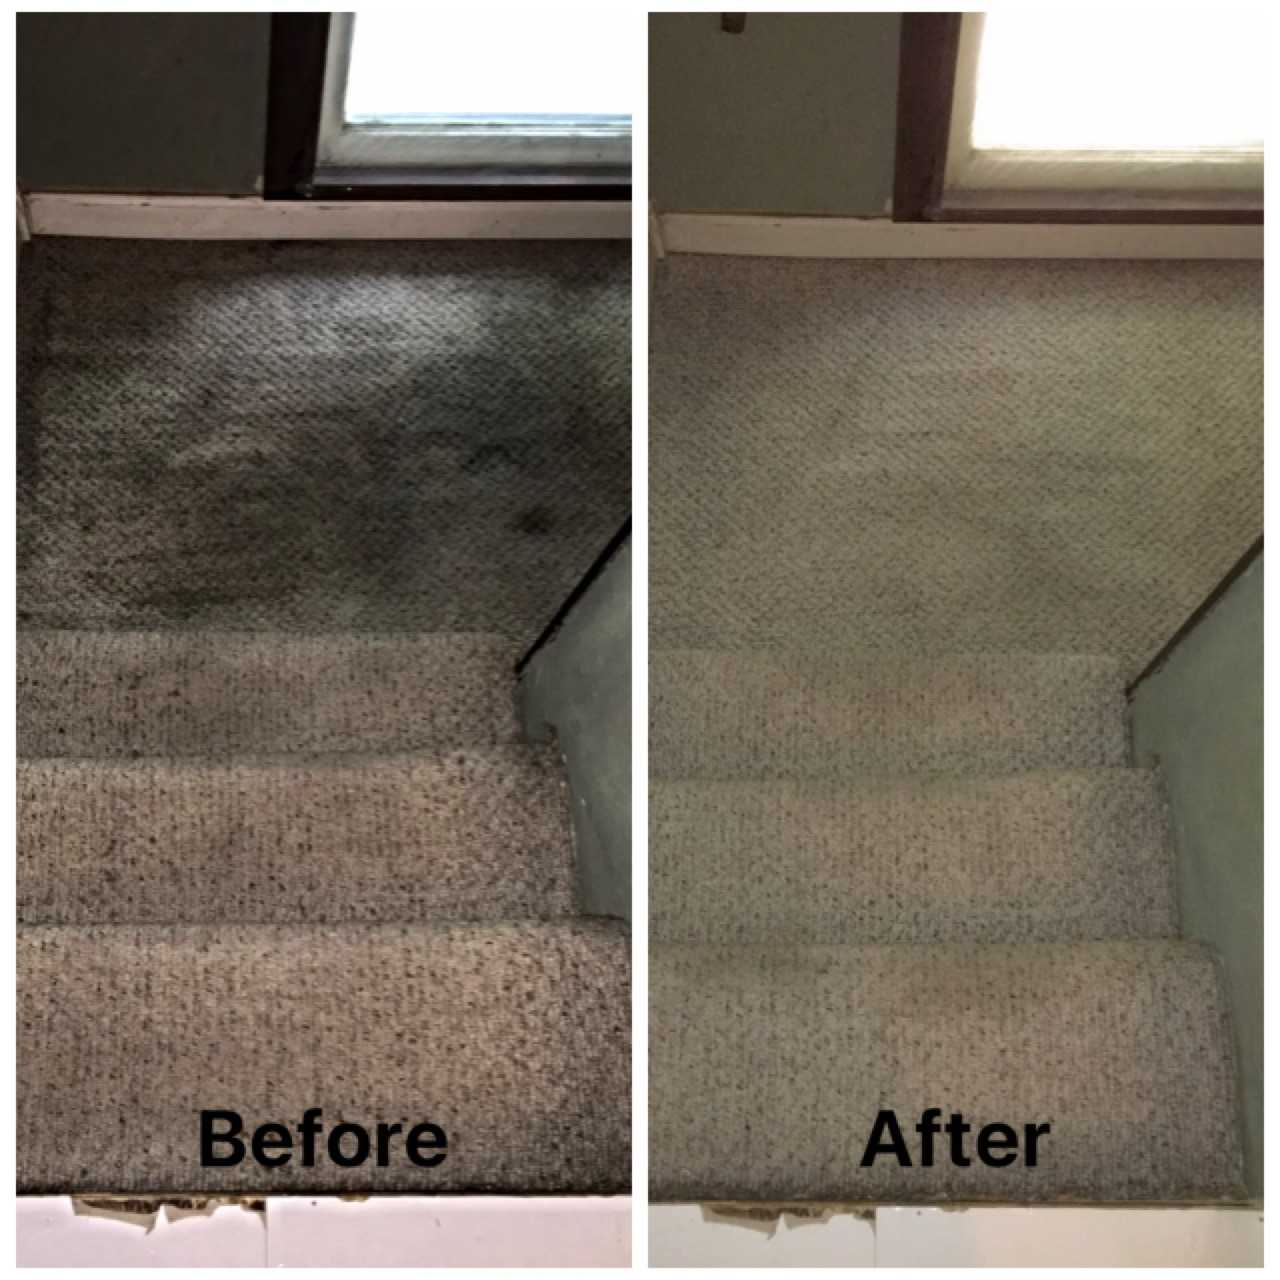 Whites Carpet Cleaners - Services - Carpet and Upholstery Cleaning in cedar rapids IA